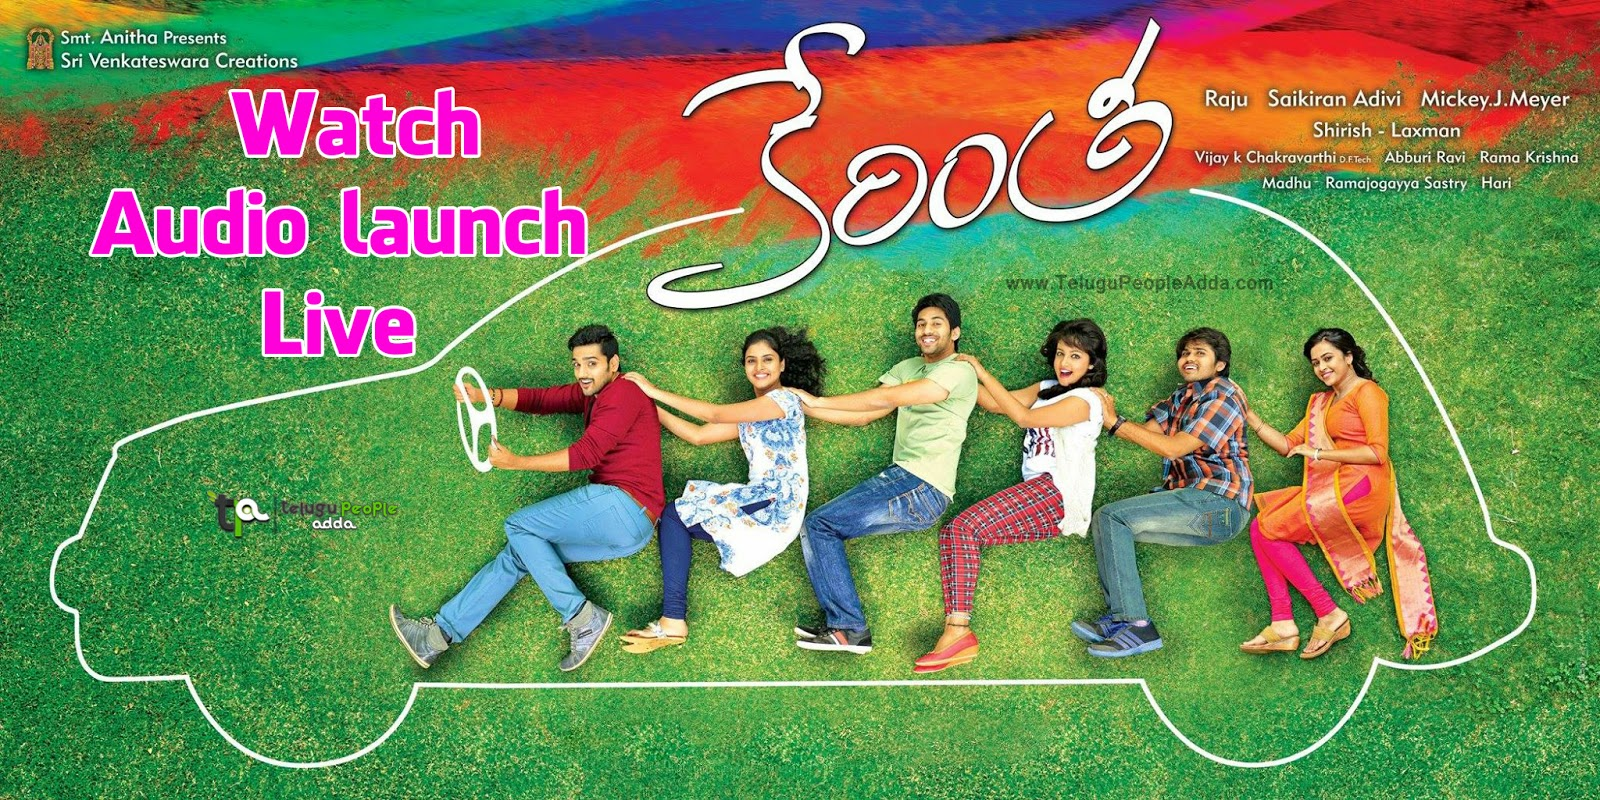 Watch Kerintha Audio Launch Live - Sumanth Ashwin, Sri Divya, Mickey J Meyer